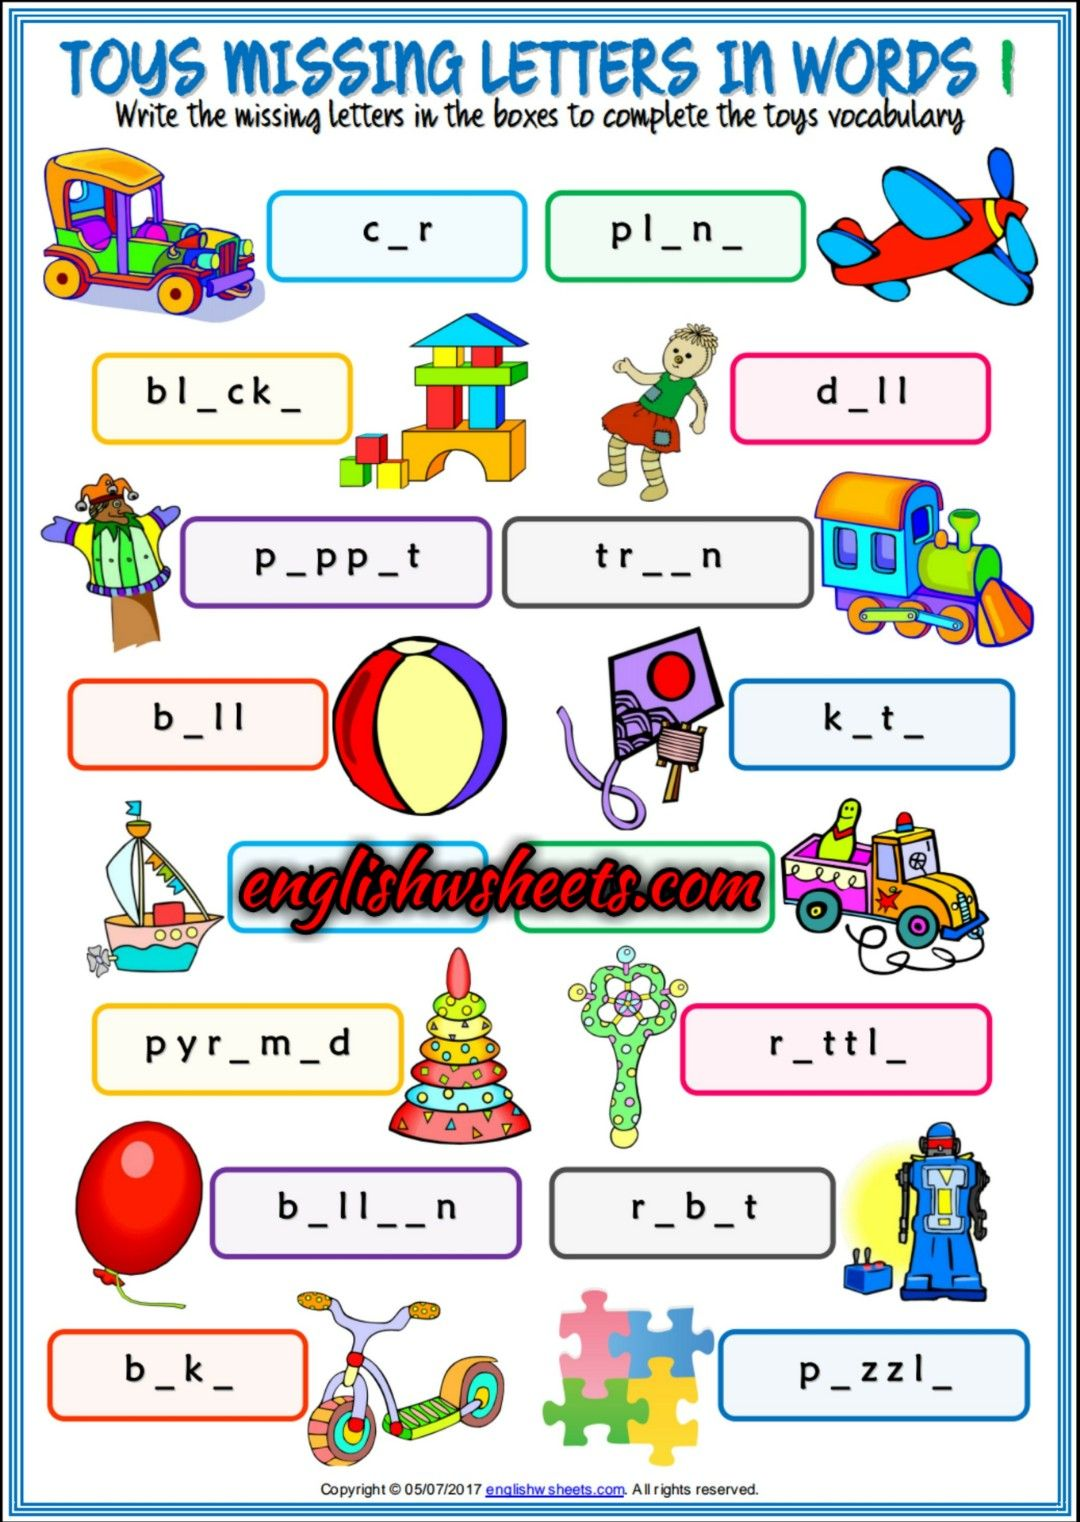 Toys Esl Printable Missing Letters In Words Worksheets For